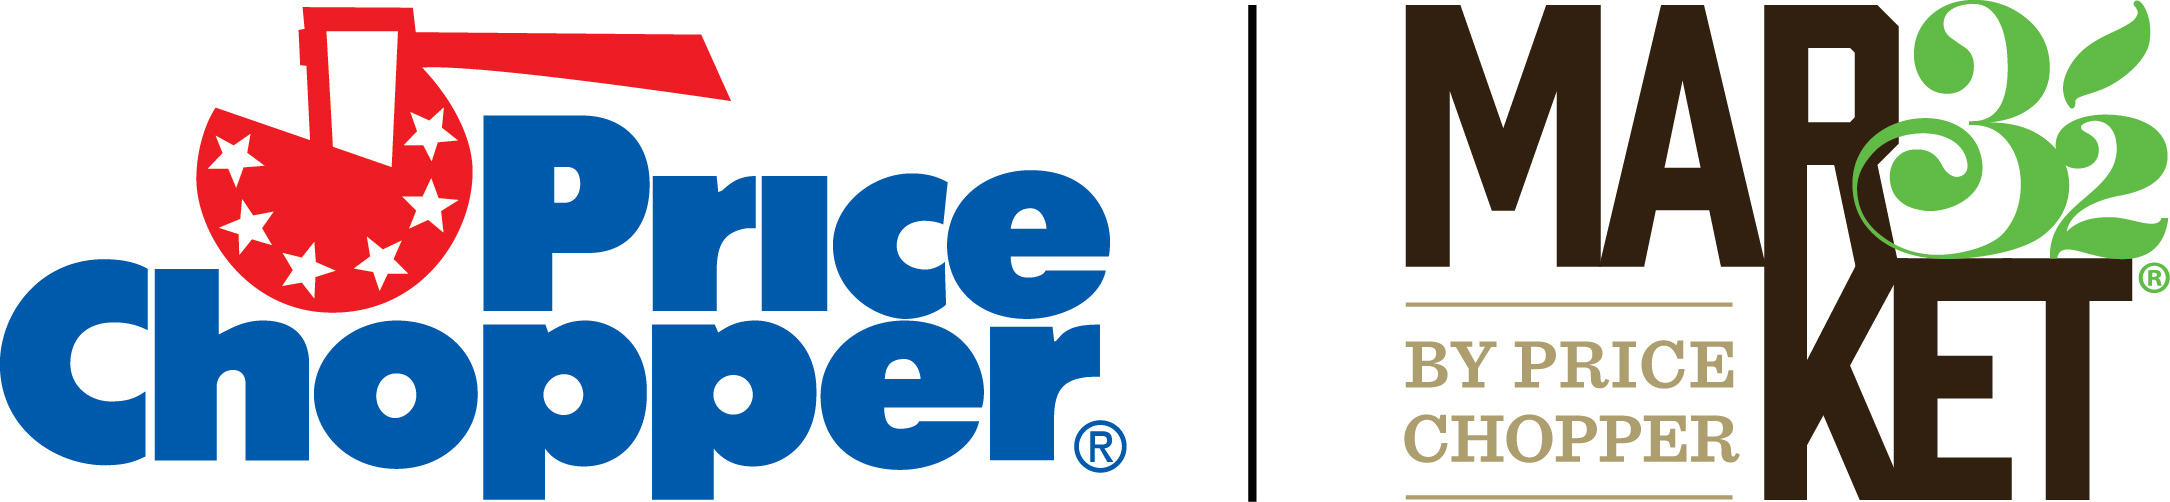 Price Chopper and Market 32 | Capital Region Chamber